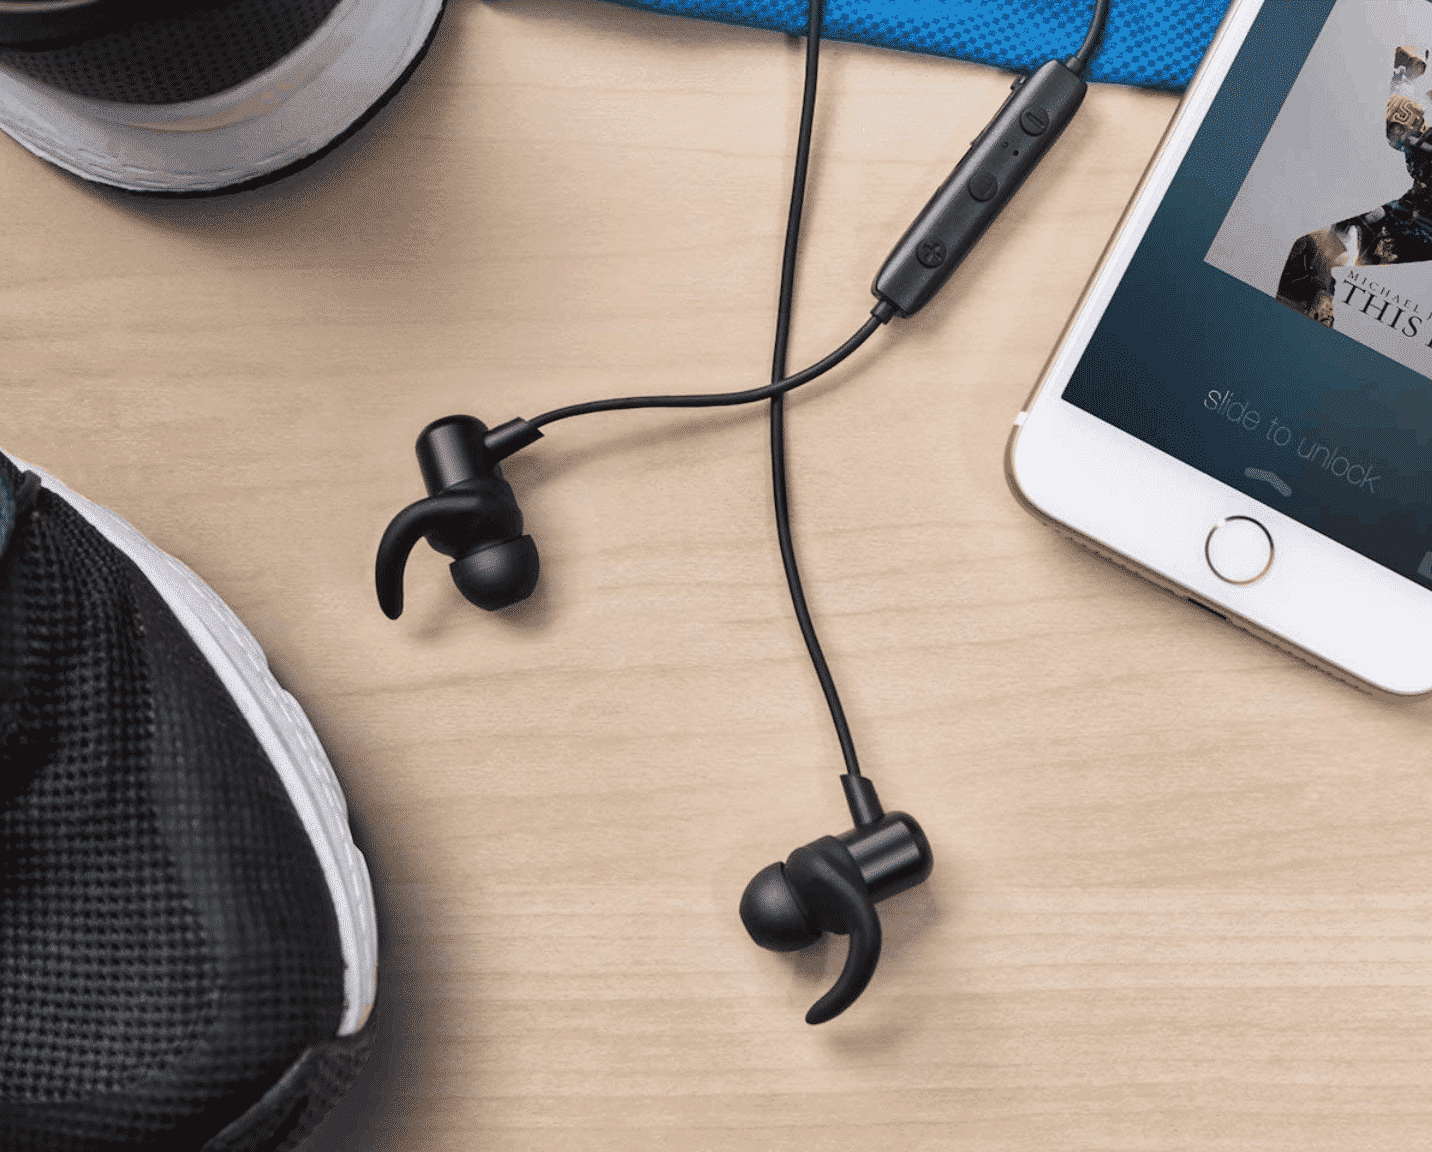 Get The Highly-Reviewed Soundbuds Slim Headphones by Anker For Only $17